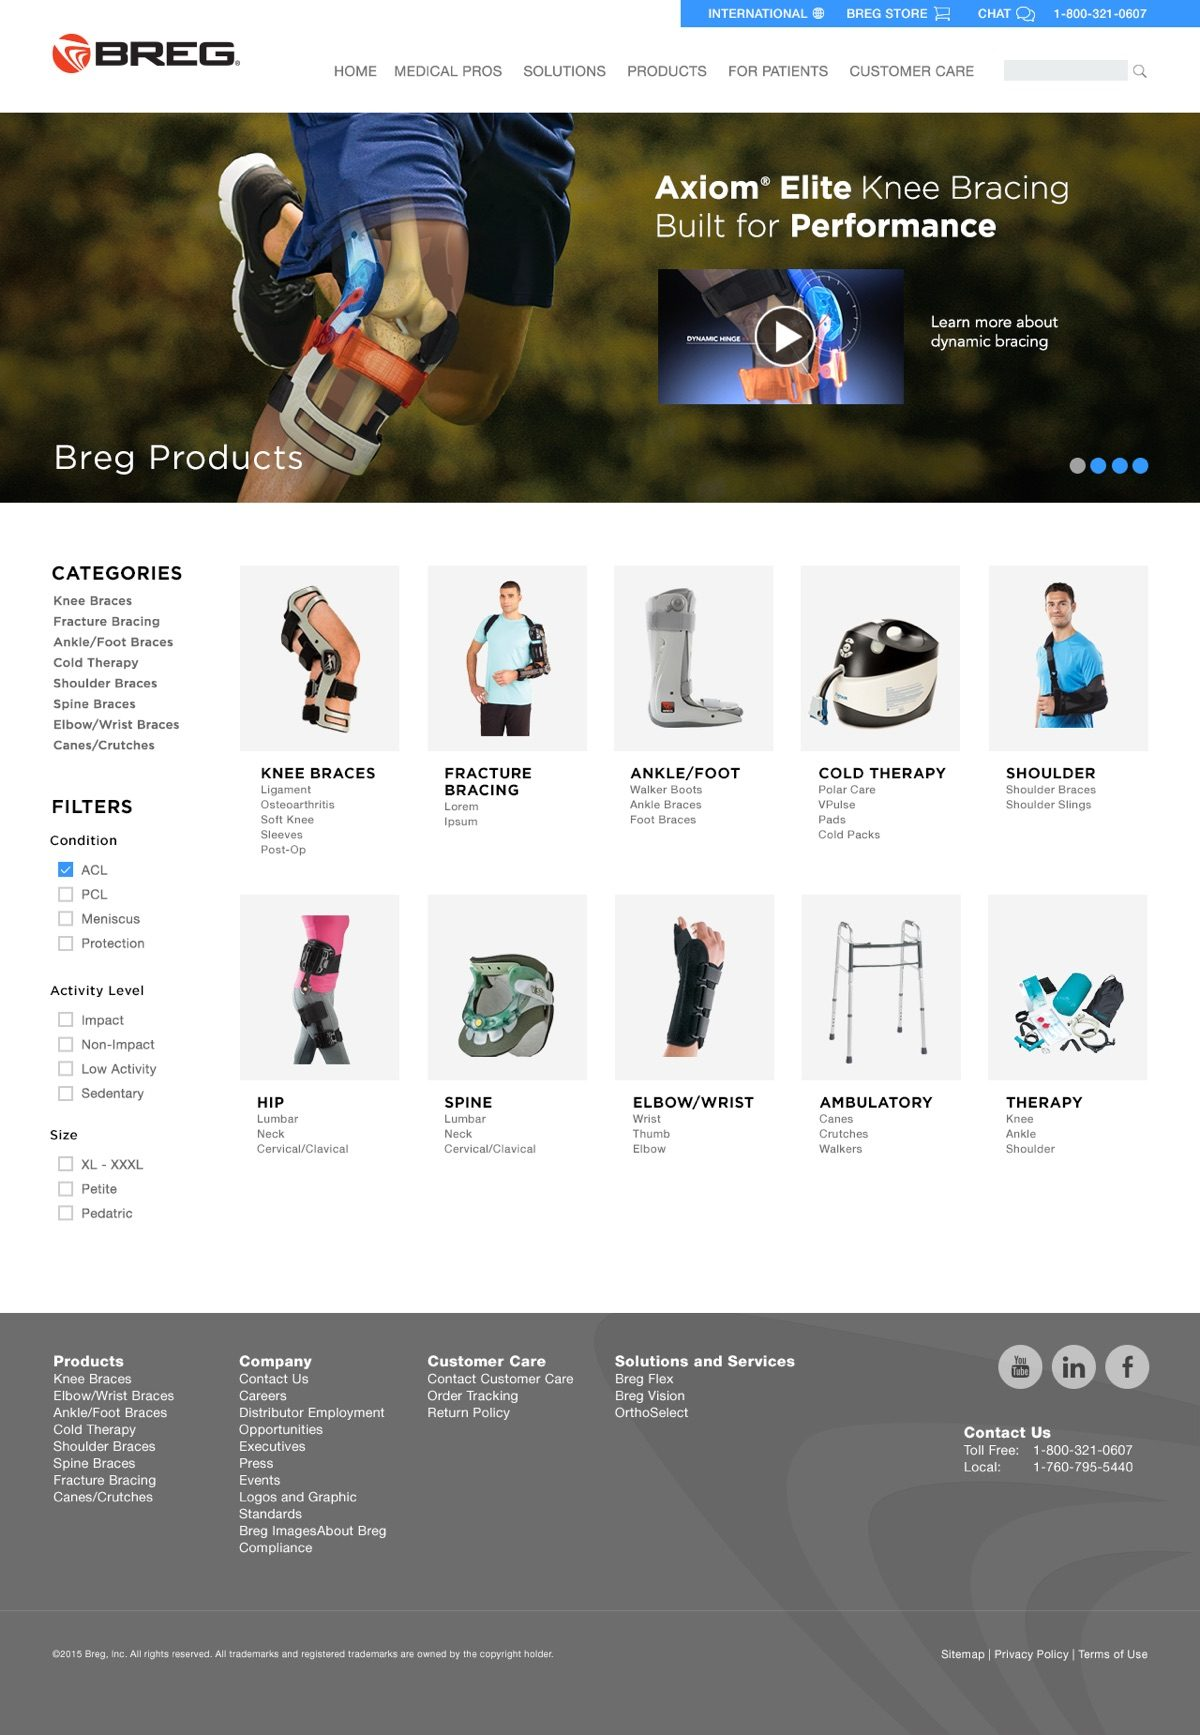 Breg.com Product Categories Page